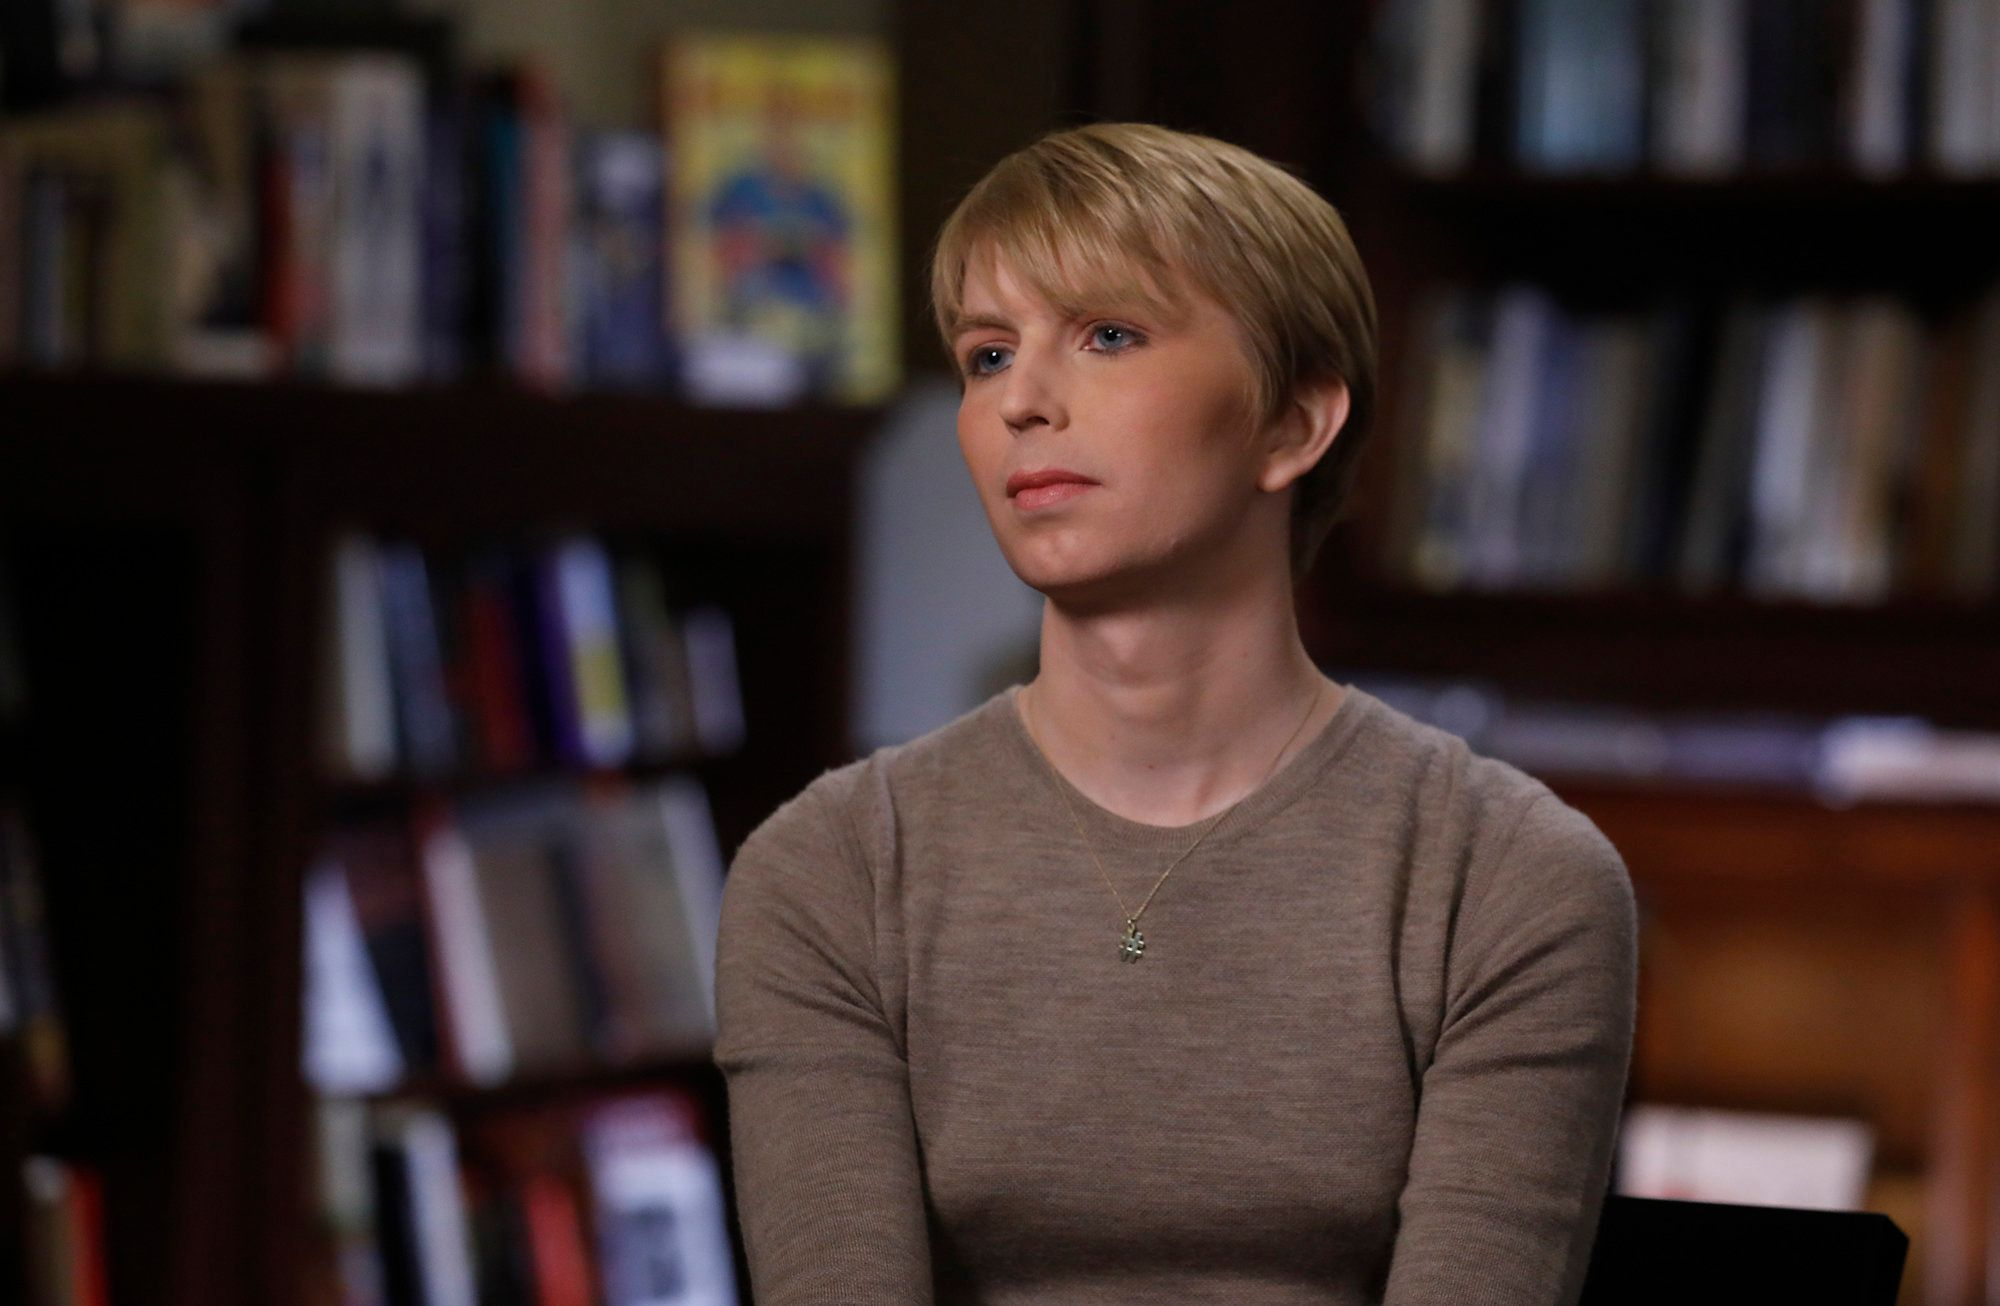 Chelsea Manning, who served seven years in prison for sharing classified information with WikiLeaks, will no longer be a